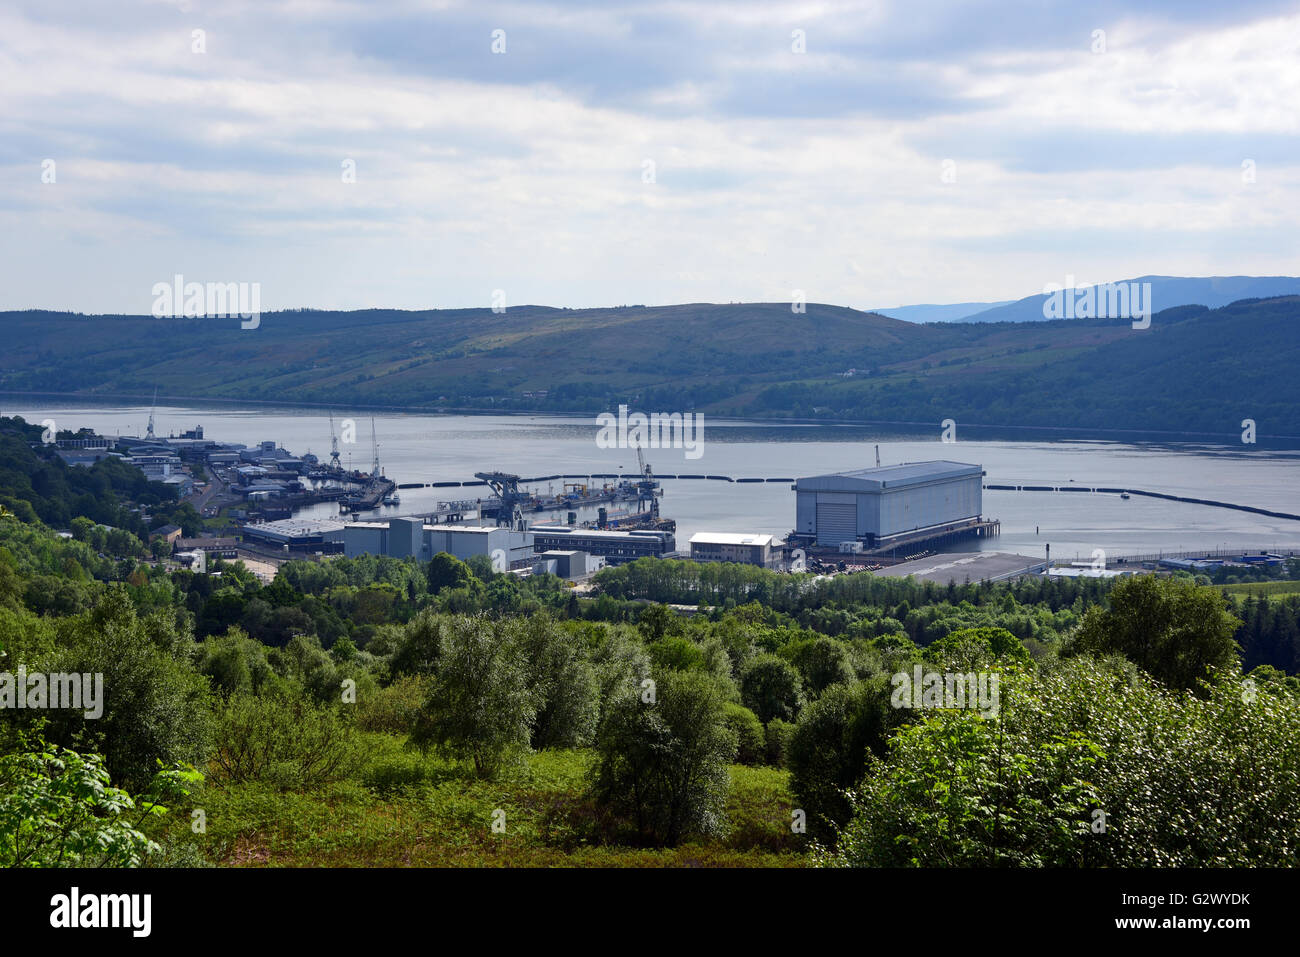 Faslane naval base on the Gareloch, home to Britain's Trident nuclear submarine fleet - Stock Image